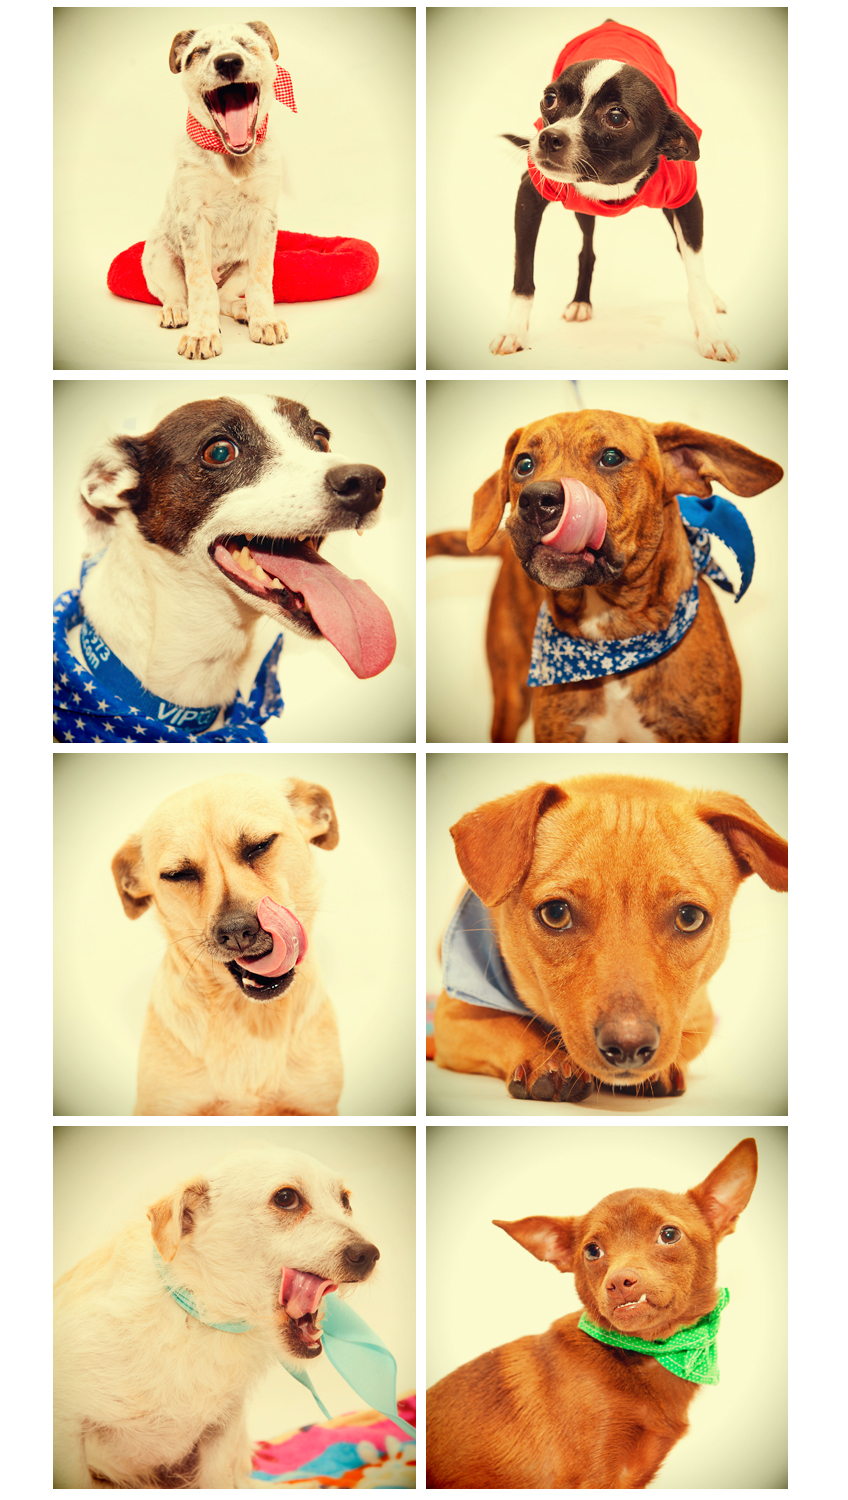 Loads of newcomers at the Sacramento animal shelter